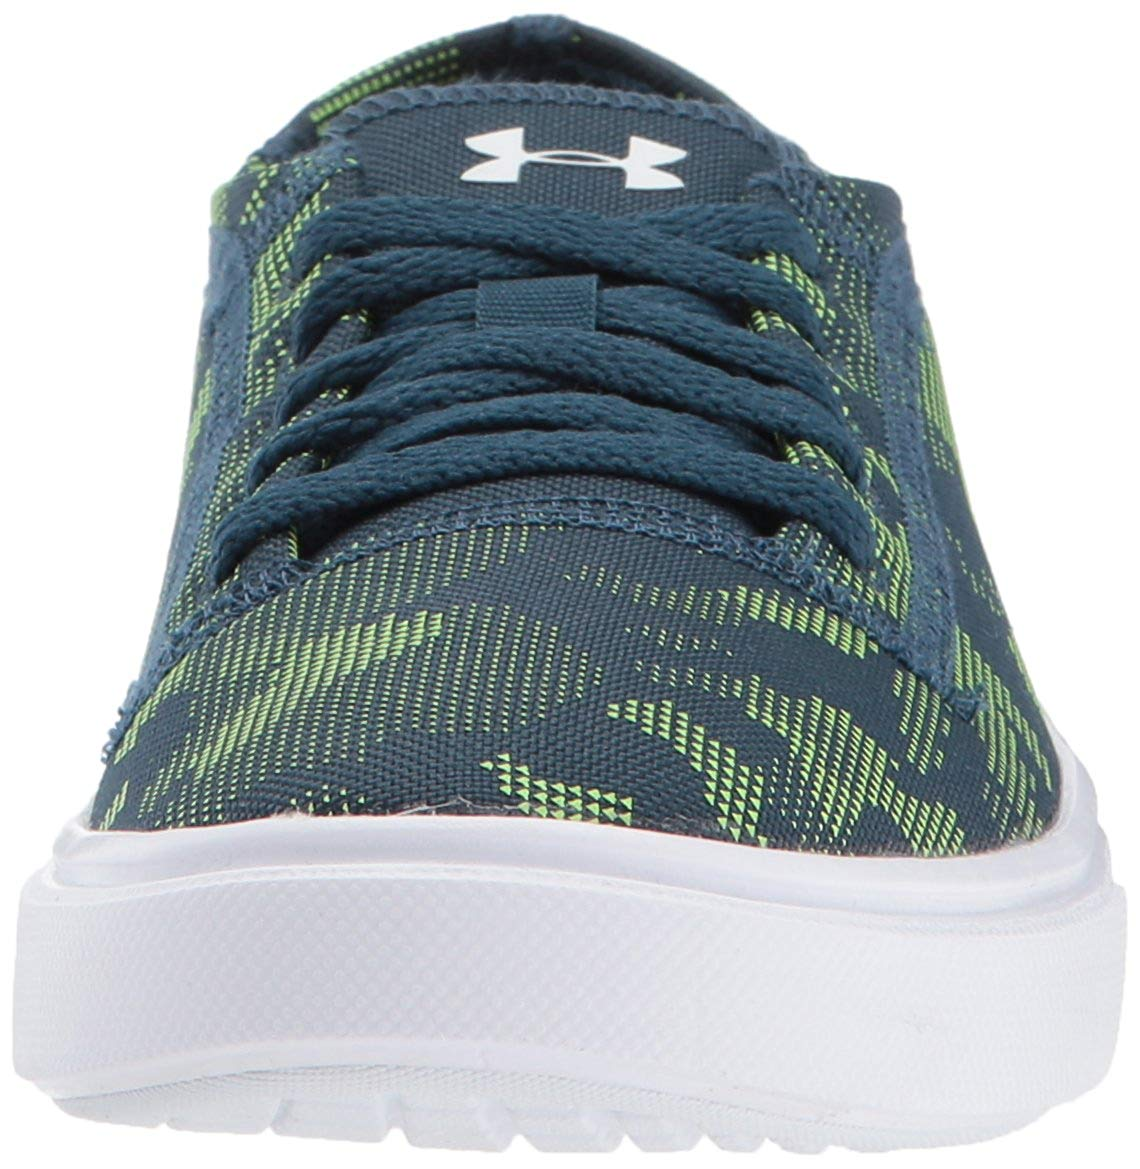 ec3bc2be23 Details about Kids Under Armour Girls KickIt2 low Low Top Lace Up, Green,  Size 12K US /